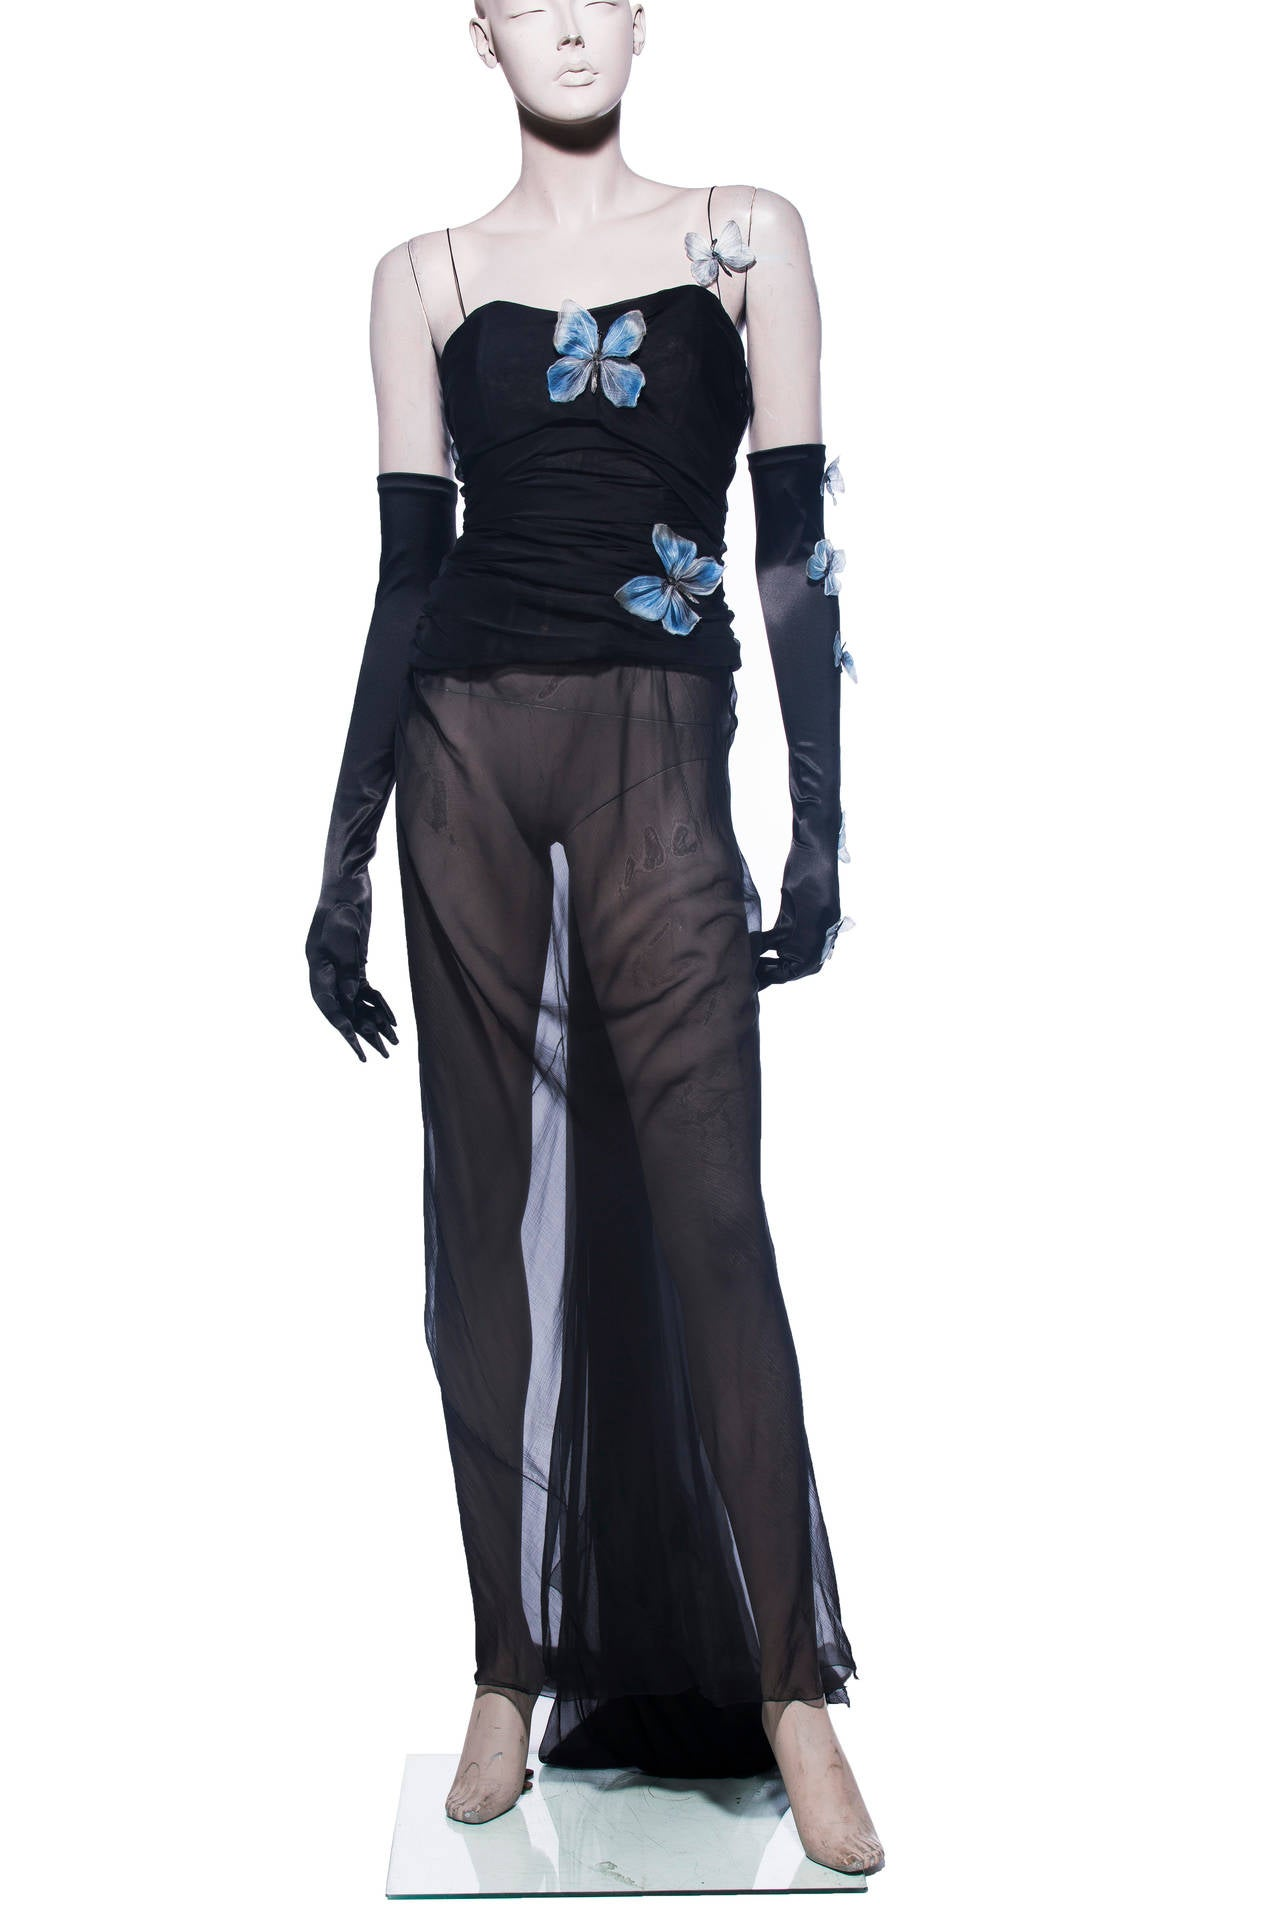 Dolce & Gabbana, Stromboli Collection Spring-Summer 1998, black silk chiffon dress with blue butterfly applique, corset top and back hook closure with matching satin gloves.